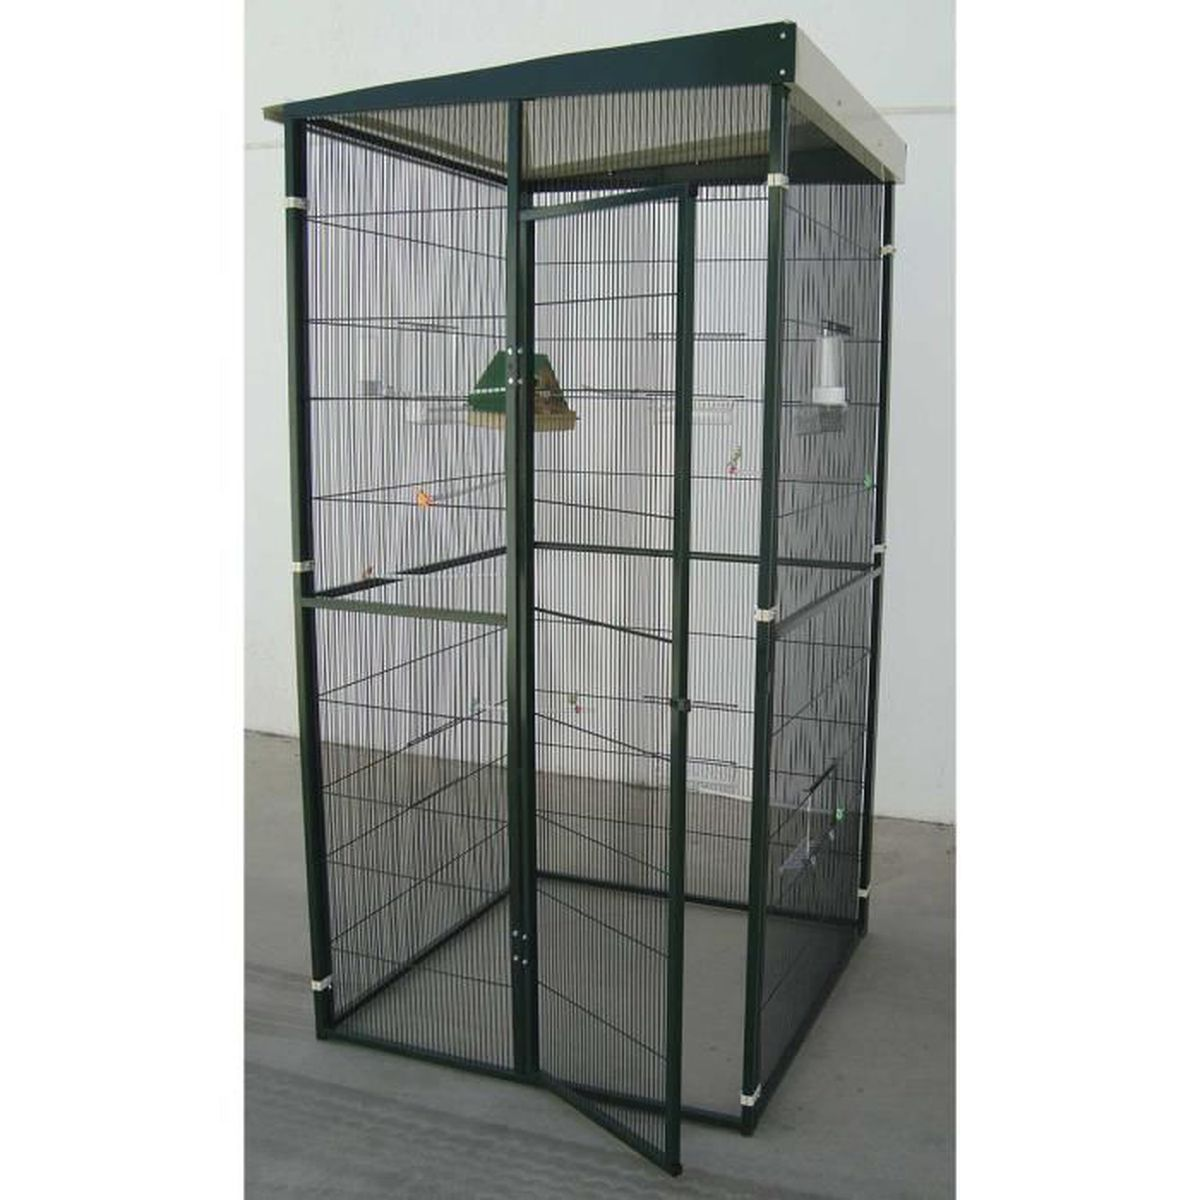 voli re de jardin 1m avec porte d 39 entr e vert achat vente voli re cage oiseau voli re de. Black Bedroom Furniture Sets. Home Design Ideas